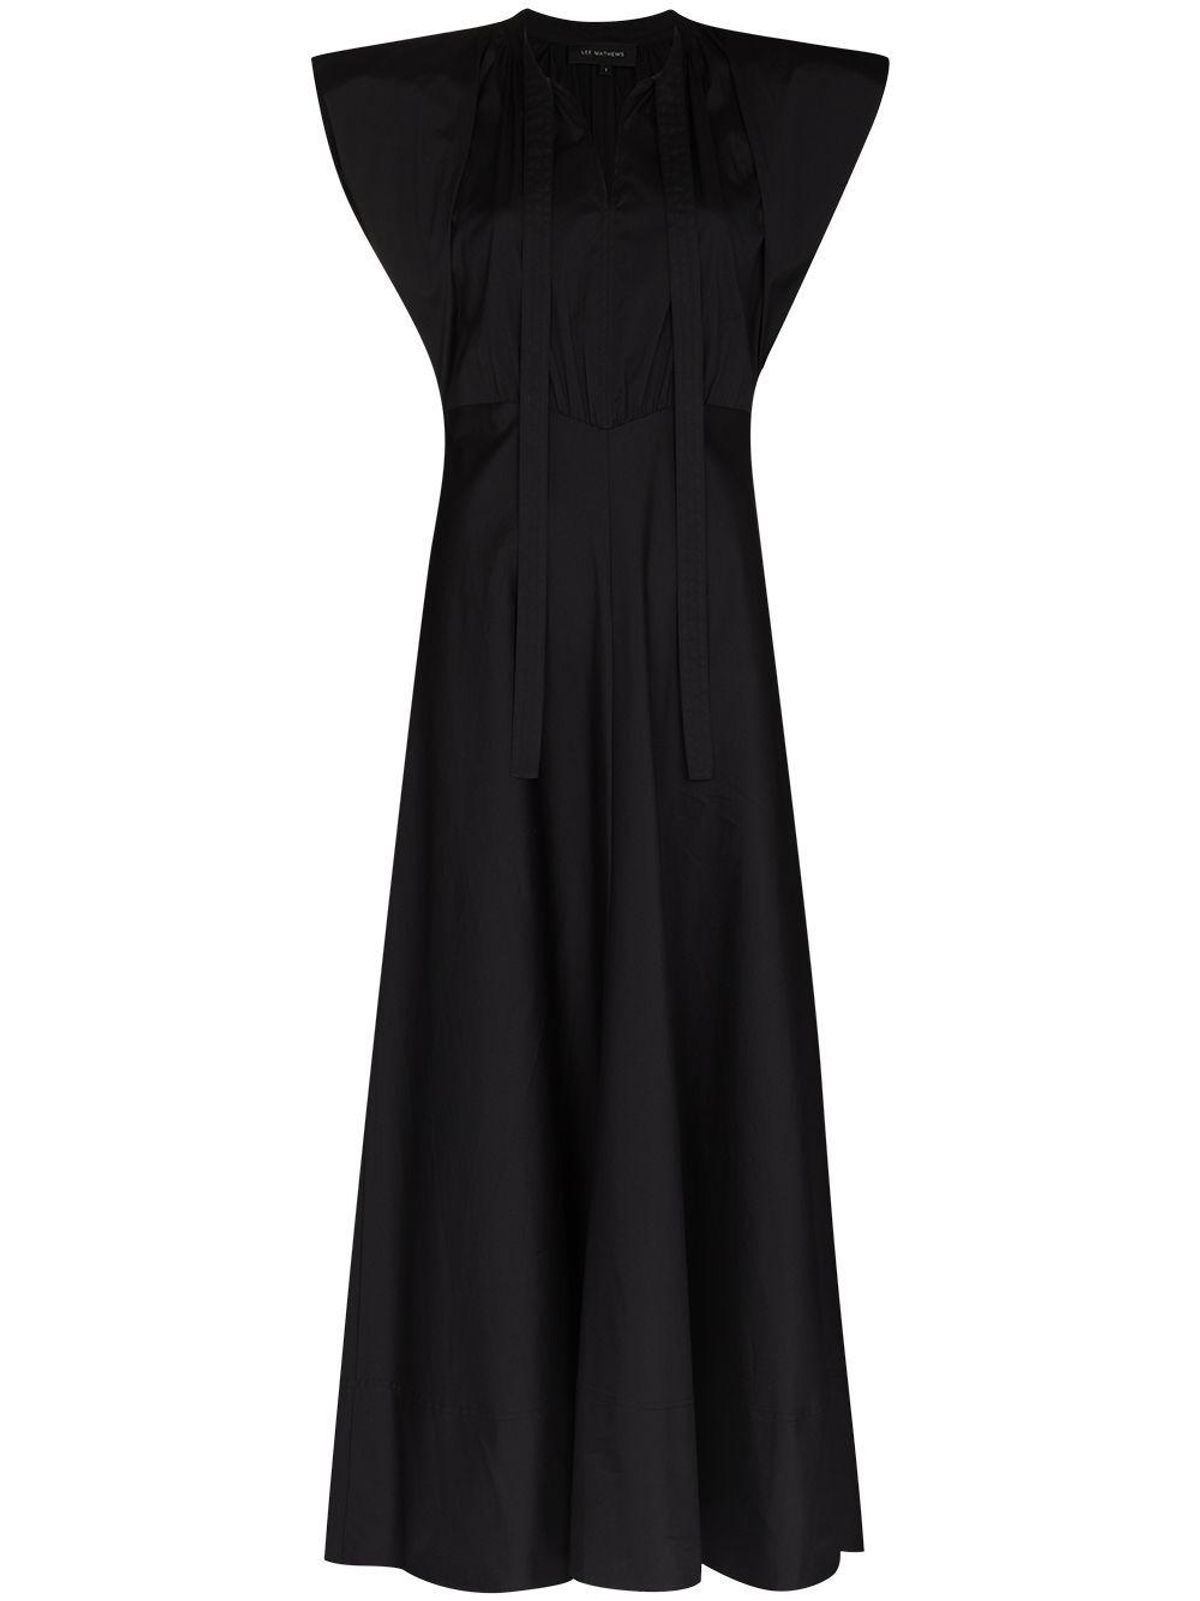 Maleo Tie-Neck Maxi Dress